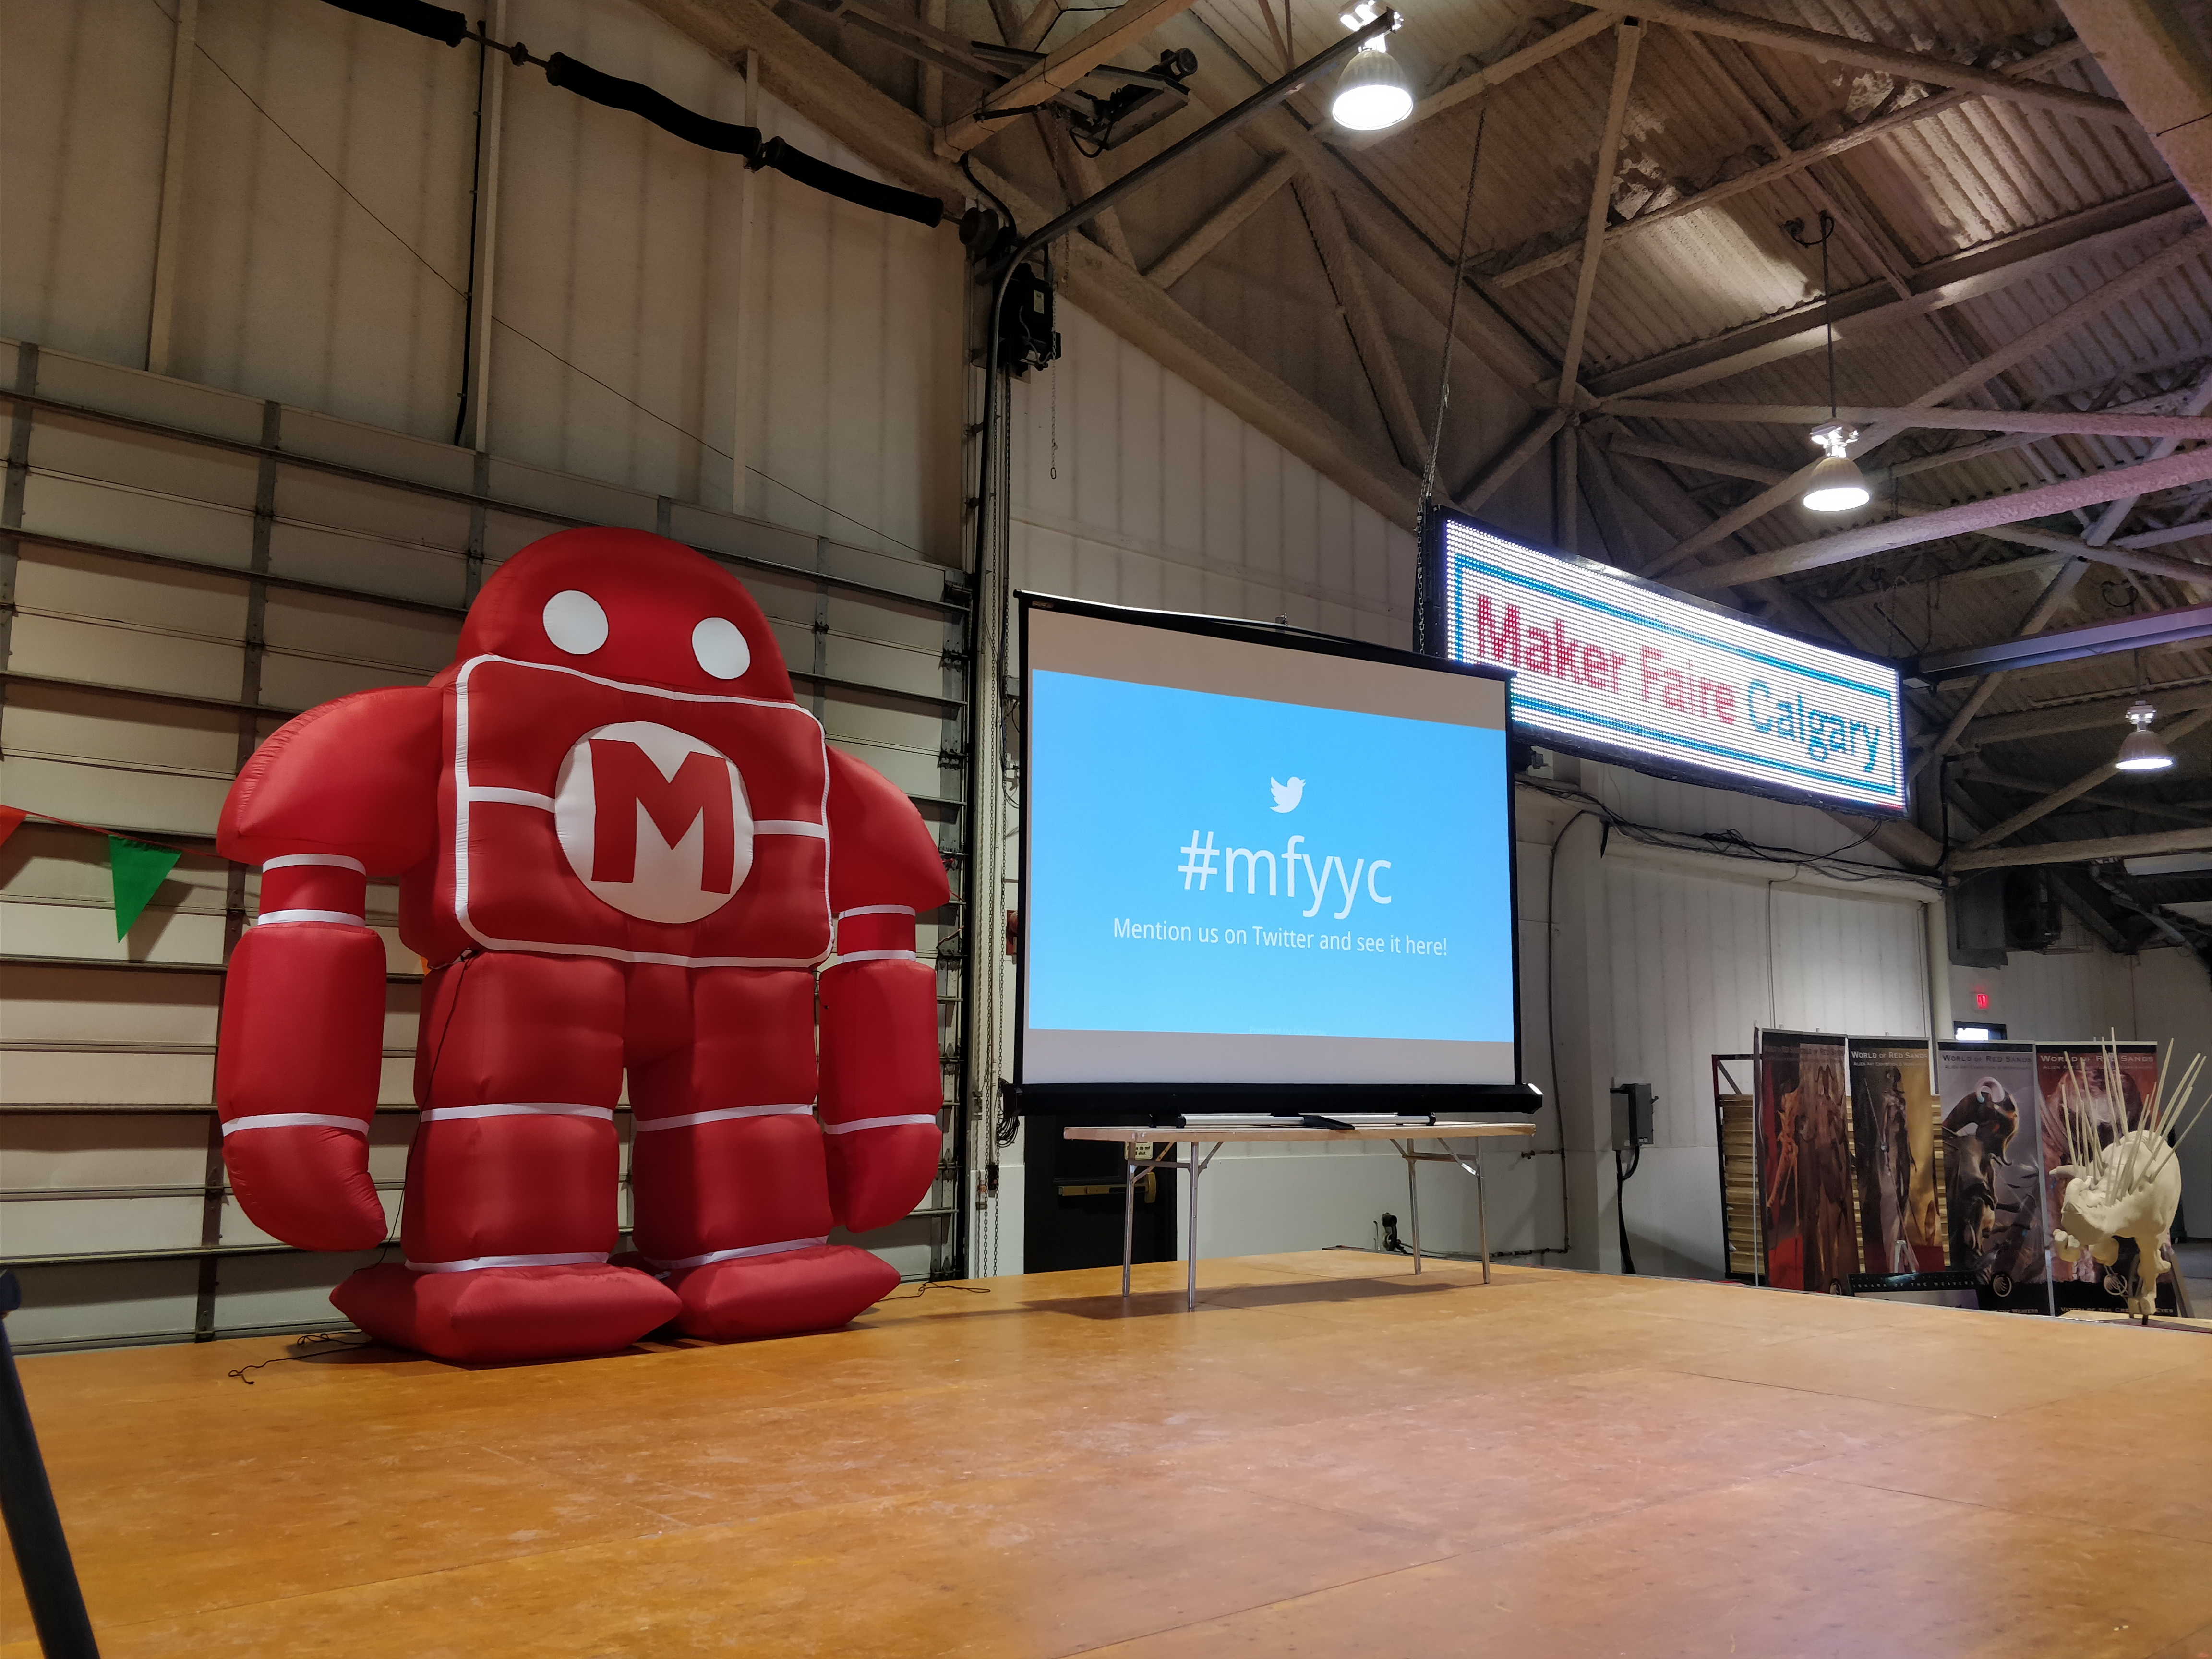 Live Updates From Maker Faire Calgary